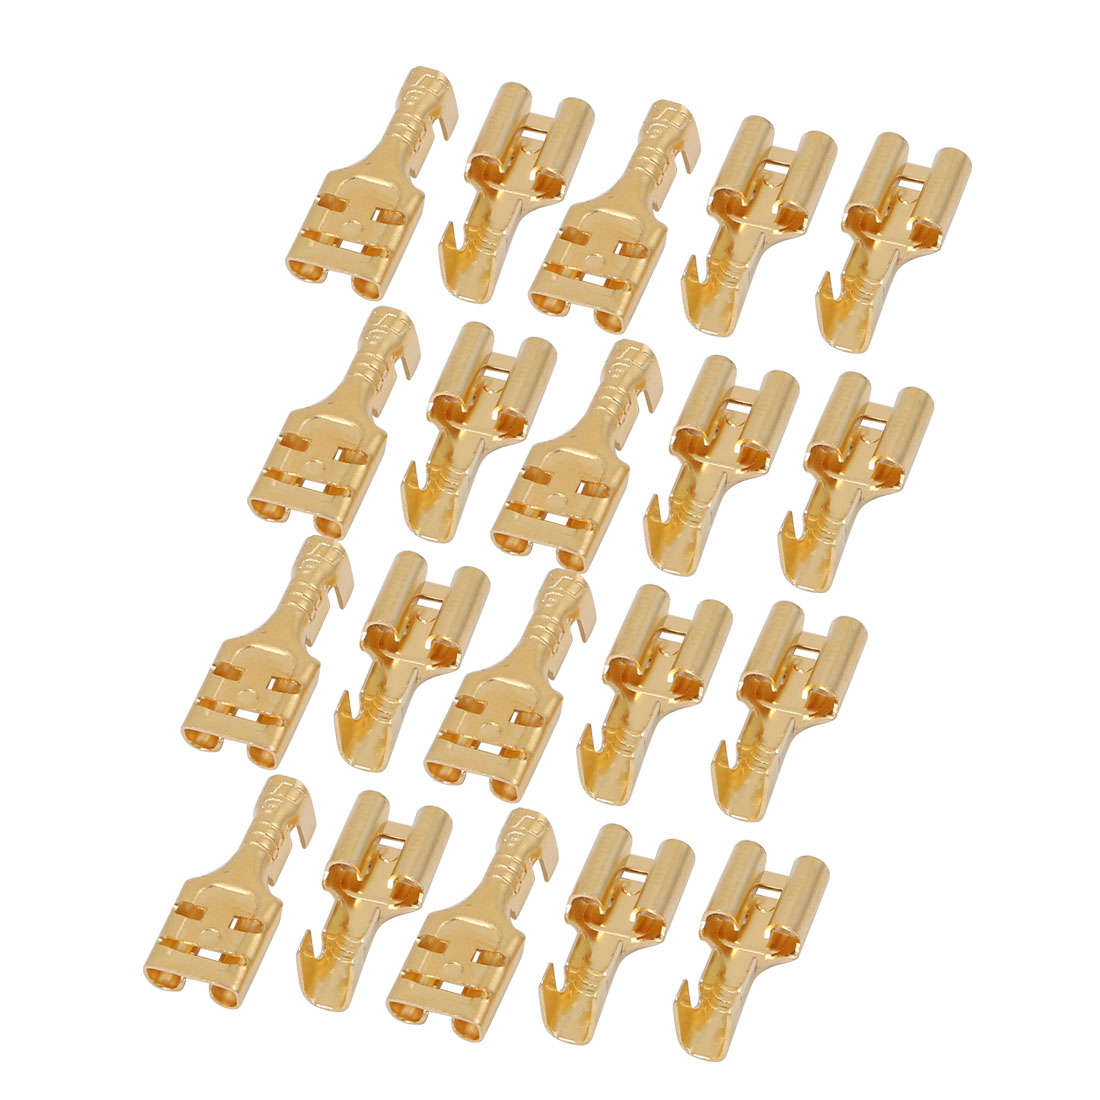 20 Pcs Brass Female Spade Cable Terminals for 6.3mm Connectors